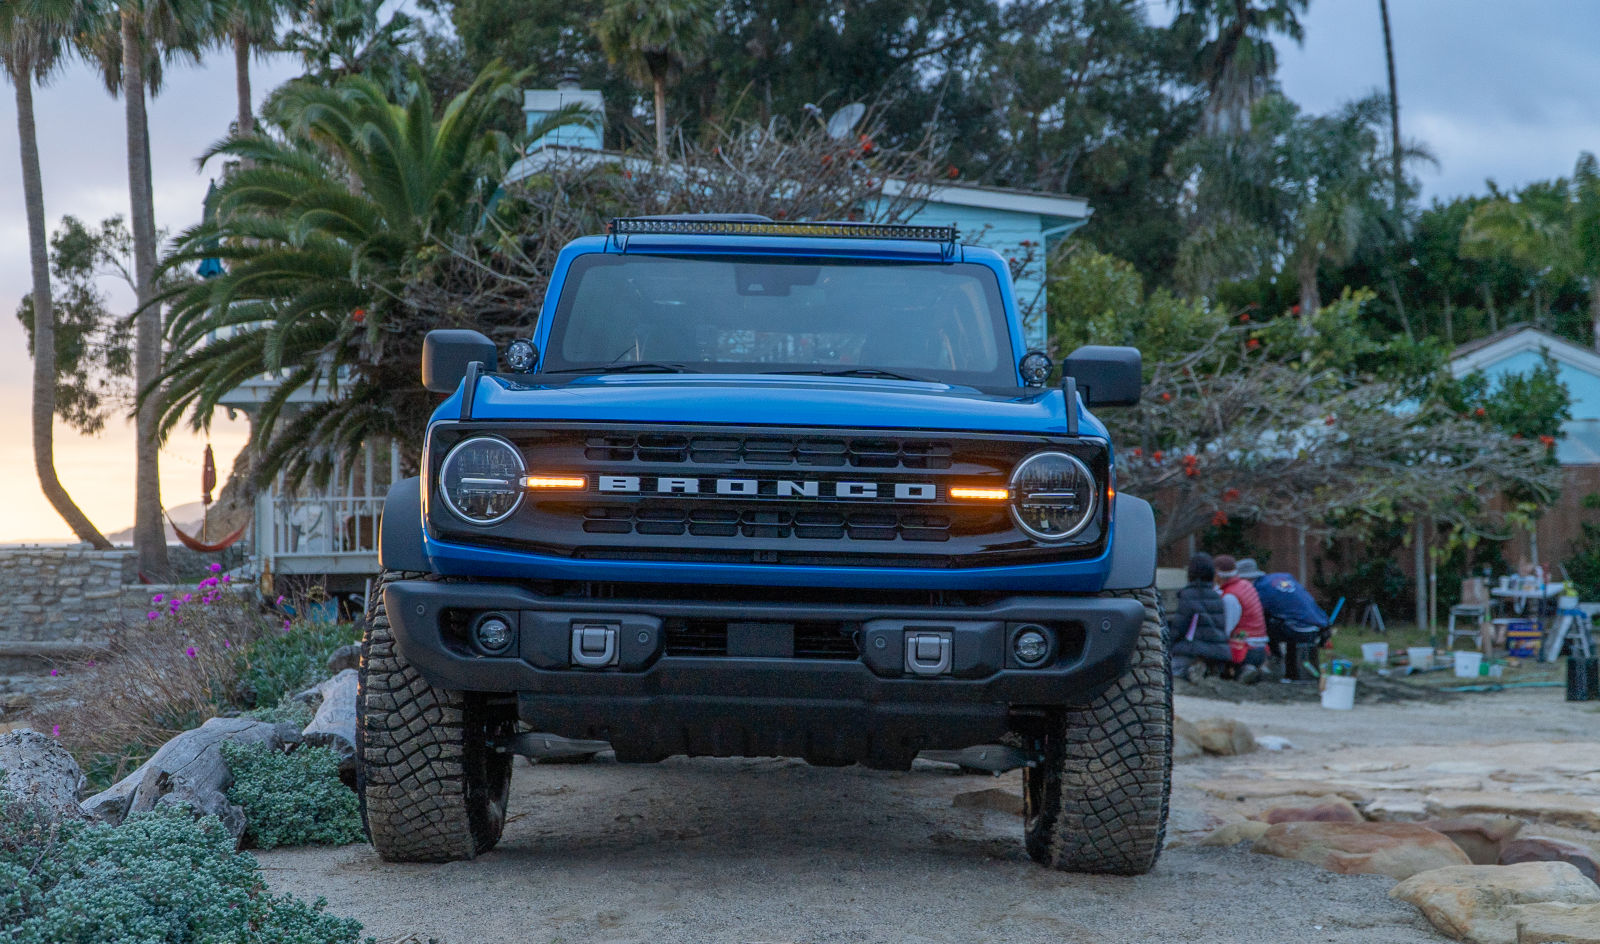 Ford Bronco Capable Bumper Joins Options for 2022